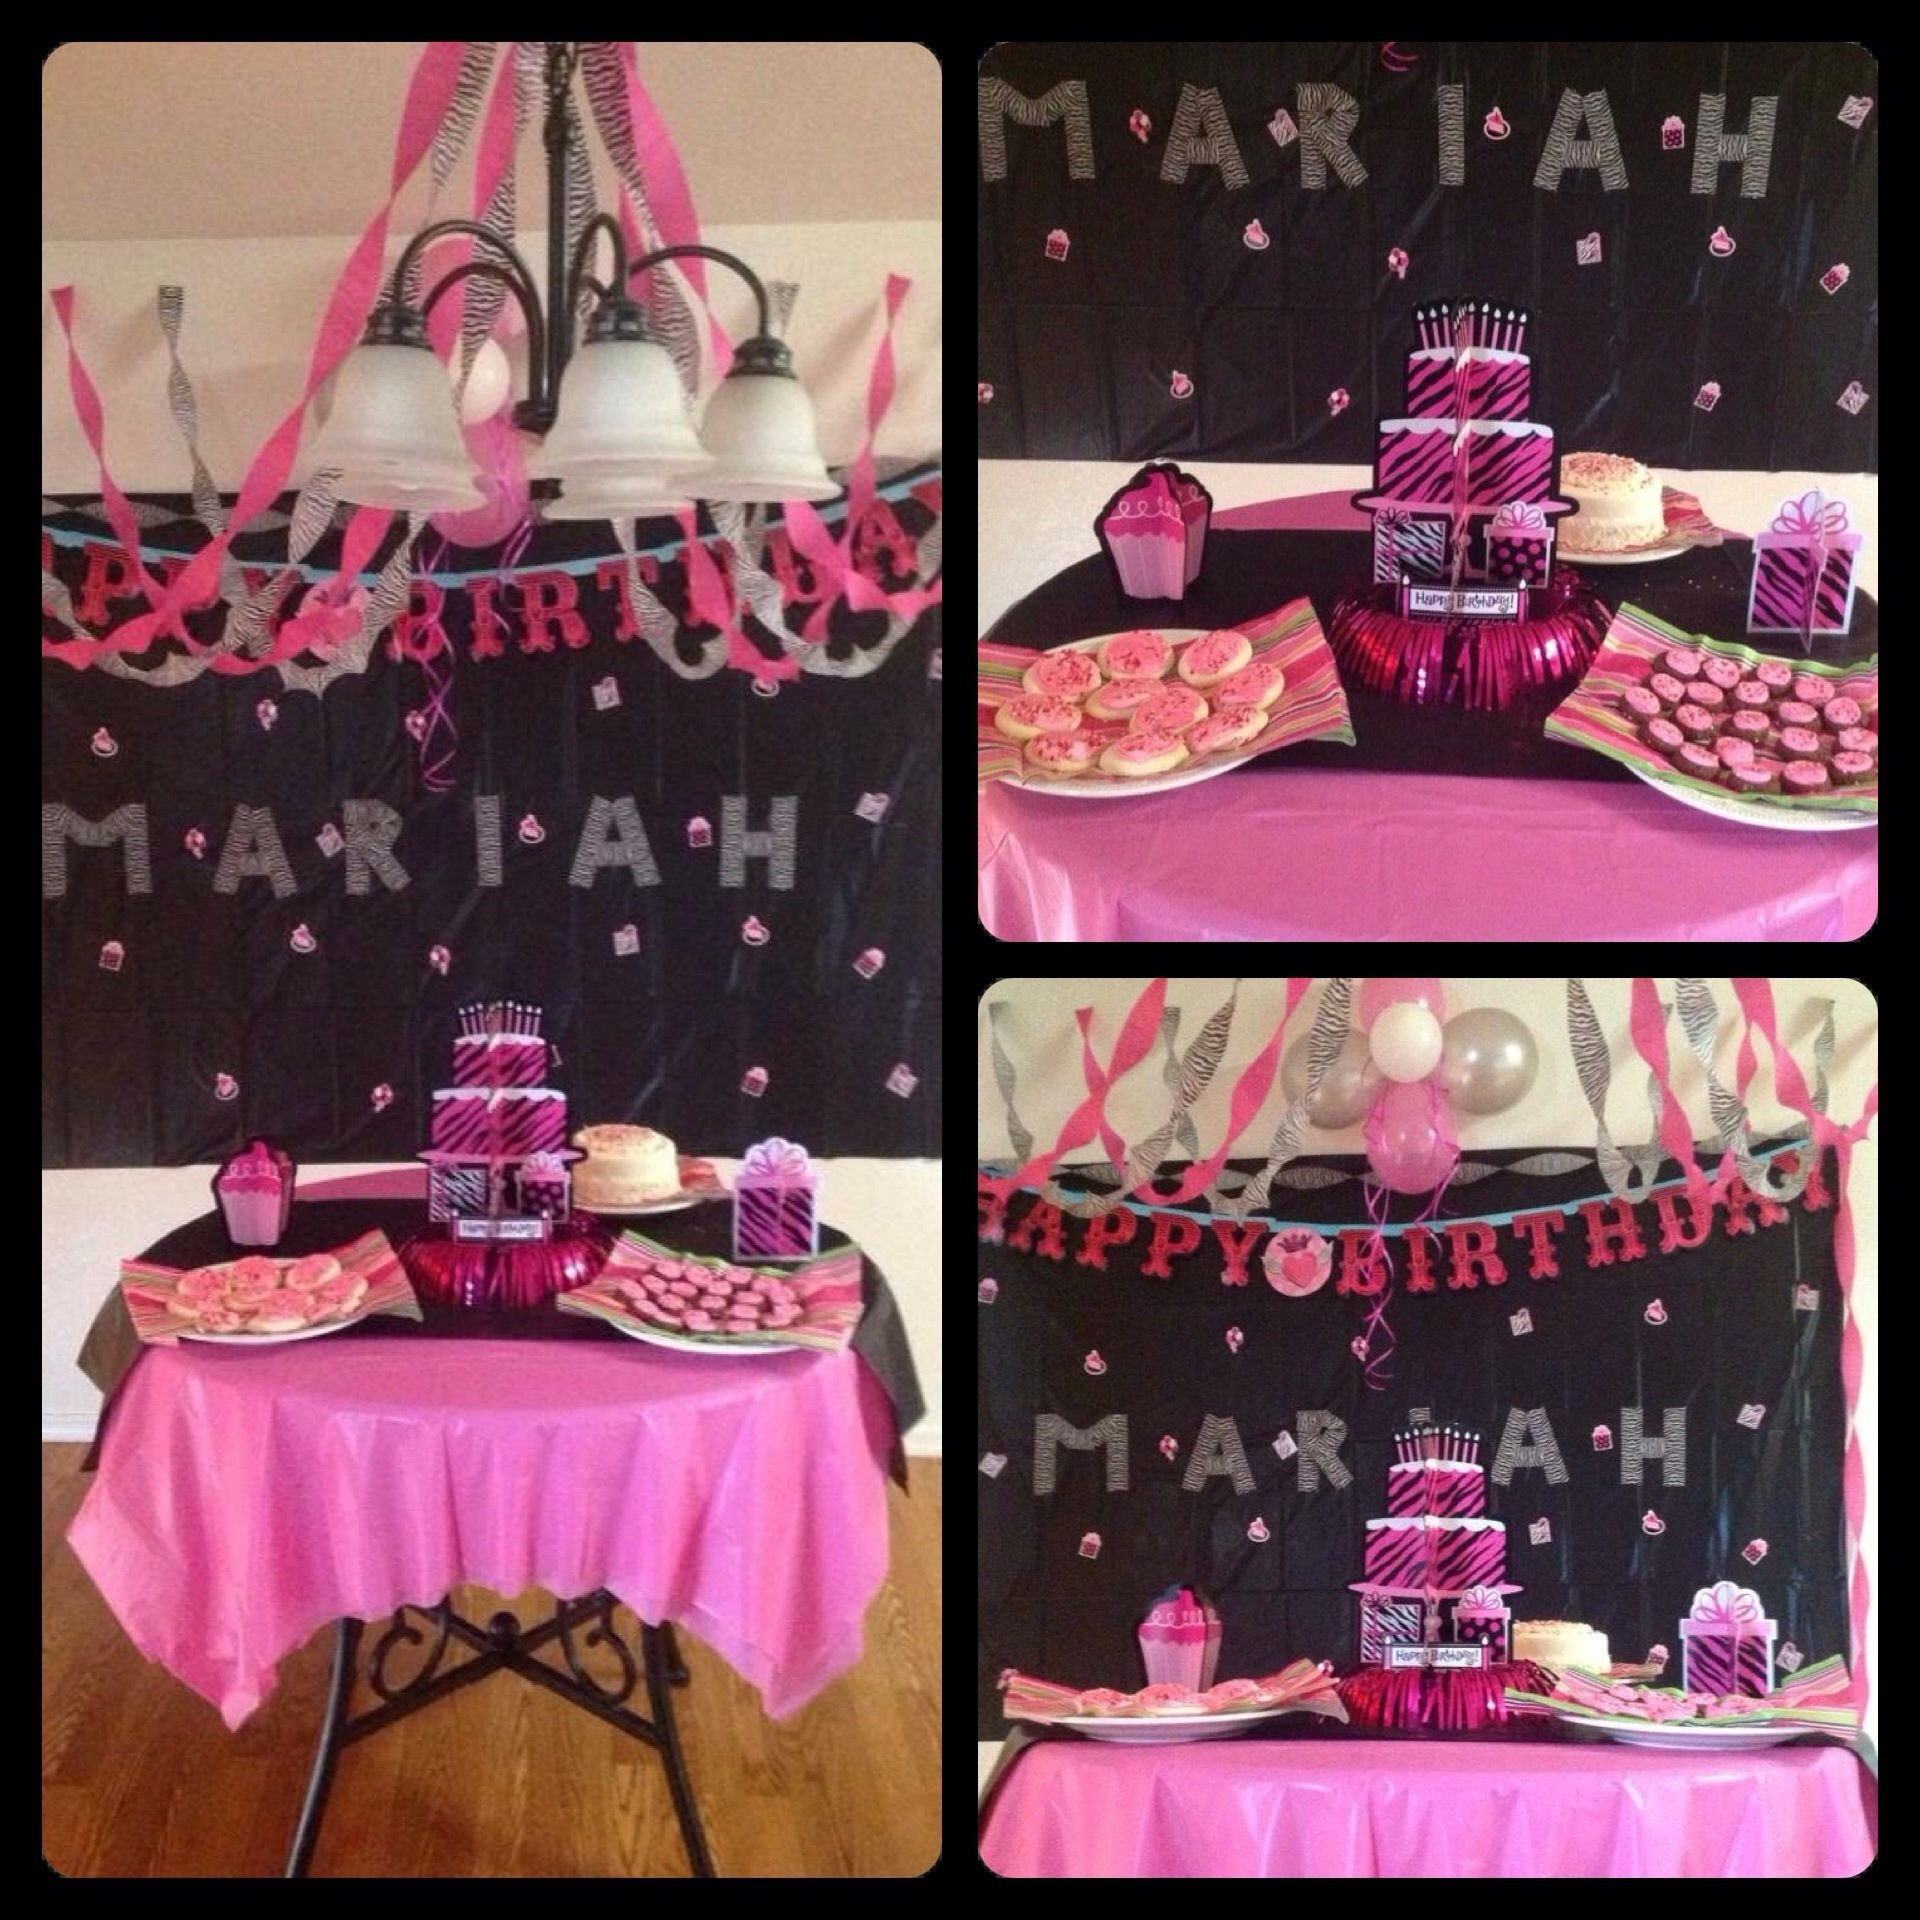 10 Wonderful Ideas For 10 Year Old Birthday party ideas had my 10 year old celebrate her birthday with some 9 2020